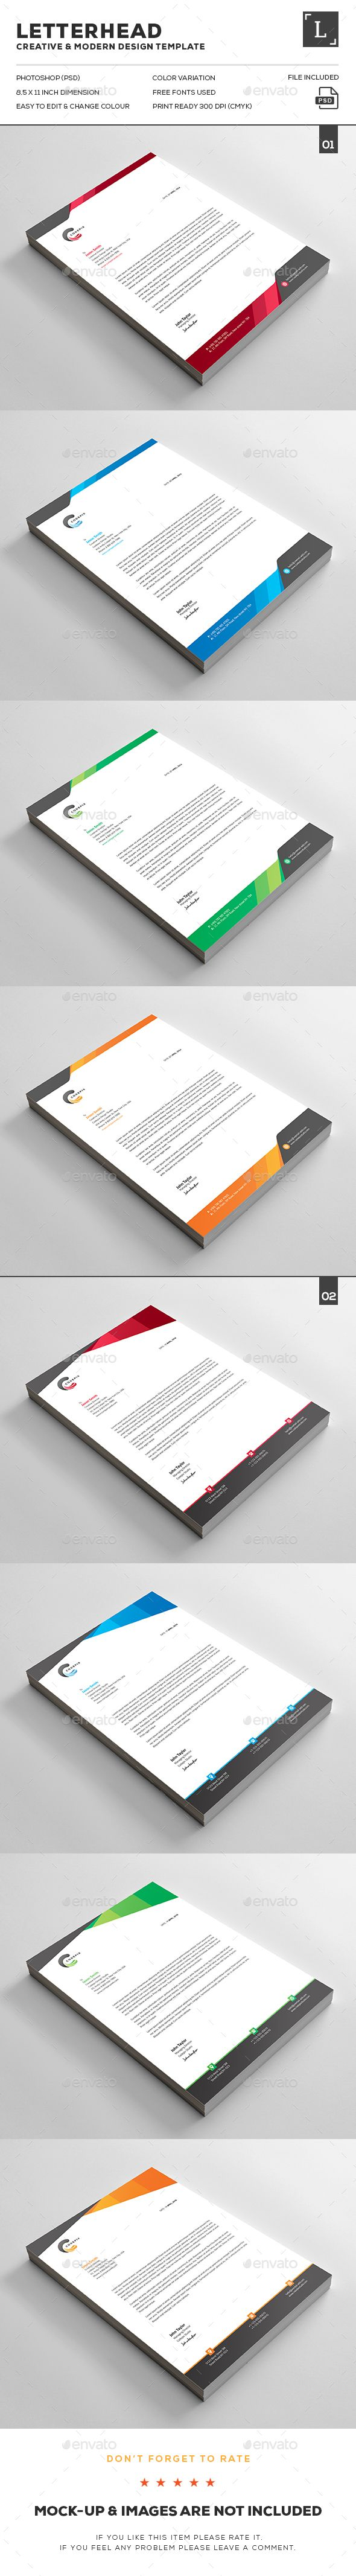 80 best letterheads print template images on pinterest print letterhead bundle letterhead template spiritdancerdesigns Choice Image